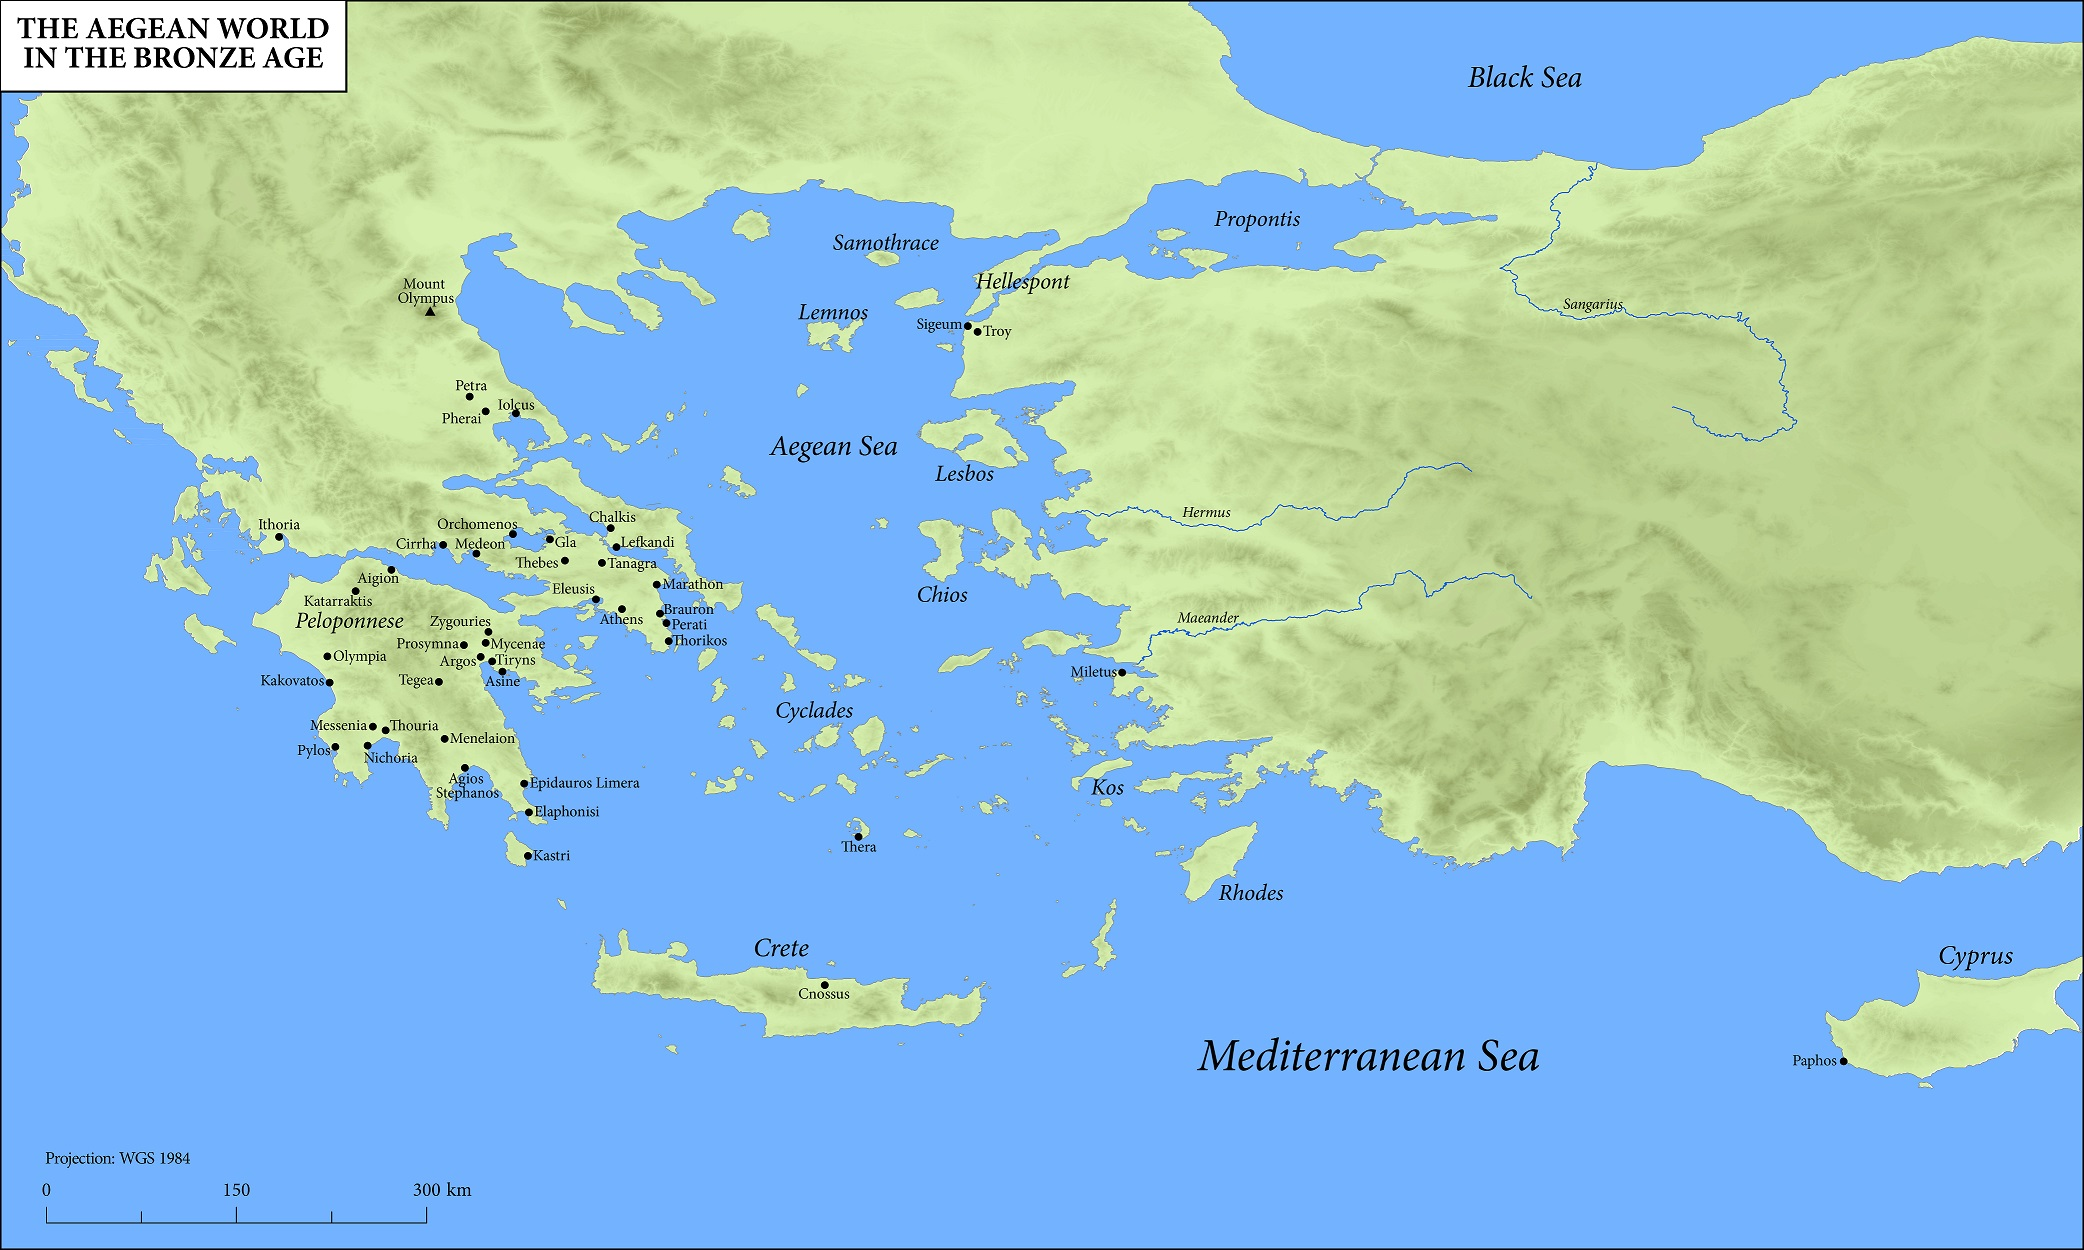 Maps of the ancient world oxford classical dictionary the aegean world in the bronze age gumiabroncs